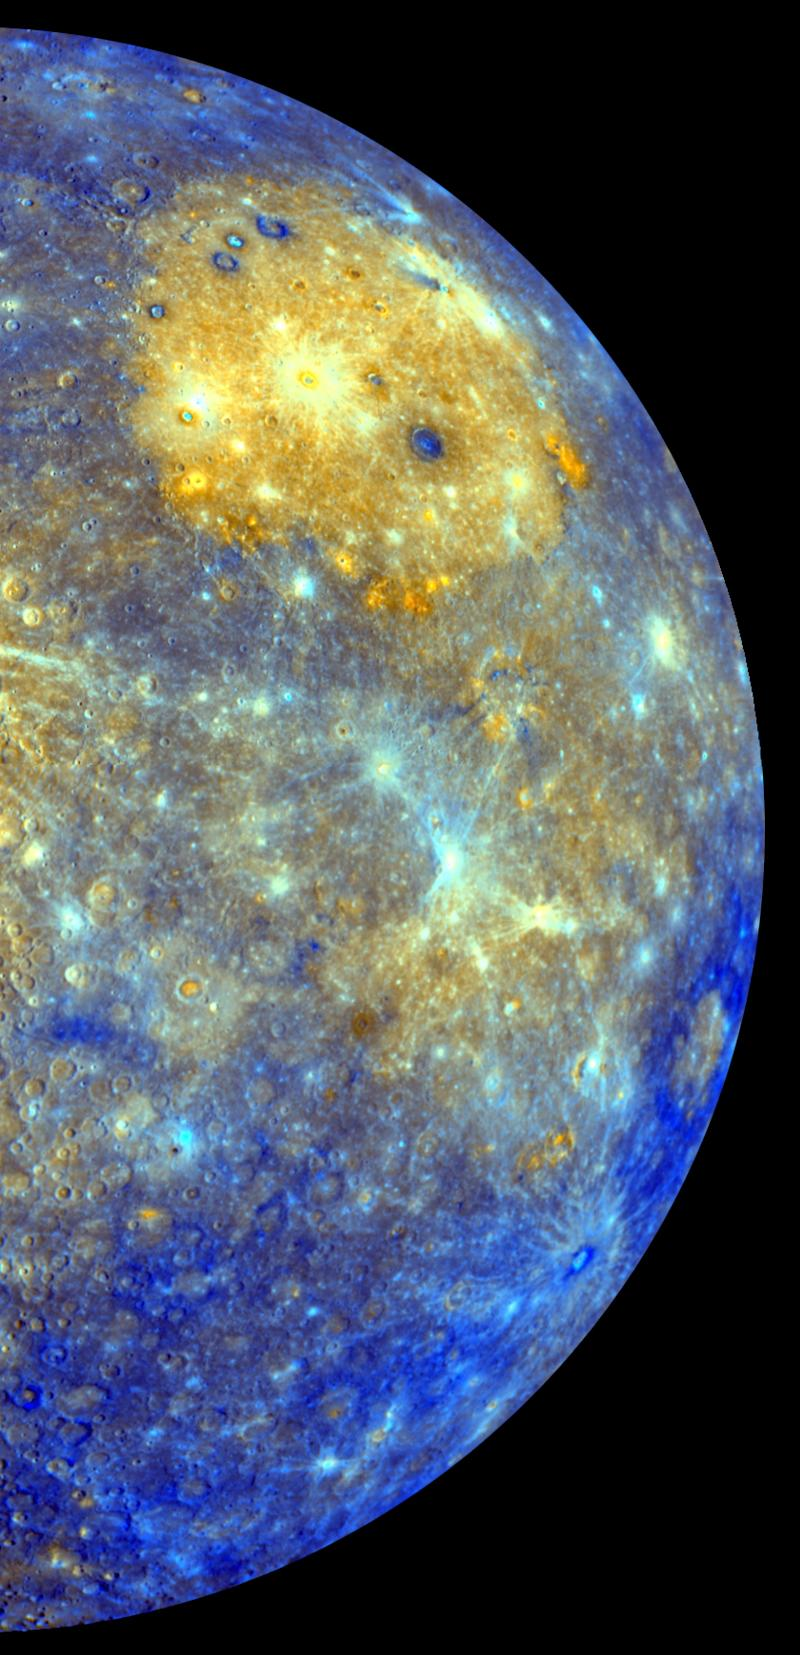 This image released by NASA shows an enhanced photo image of Mercury from its Messenger probe's 2008 flyby of the planet. NASA says it was a taste of pictures likely to come after March 17, 2011, when the probe enters Mercury's orbit. This photo shows the eastern part of the smallest and closest planet in our solar system. The colors in this picture are different than what would be seen with the naked eye, but show information about the different rock types and subtle color variations on the oddball planet. The bright yellow part is the Caloris impact basin, which is the site of one of the biggest in the solar system. For the first time, Earth has a regular orbiting eye-in-the-sky spying on the solar system's smallest and strangest planet, Mercury. NASA's spacecraft called Messenger successfully veered into a pinpoint orbit Thursday night after a 6 1/2-year trip and 4.9 billion miles and tricky maneuvering to fend off the gravitational pull of the sun. It is the fifth planet in our solar system that NASA has orbited, in addition to the Earth and the moon. (AP Photo/NASA/Johns Hopkins University Applied Physics Laboratory/Arizona State University/Carnegie Institution of Washington)